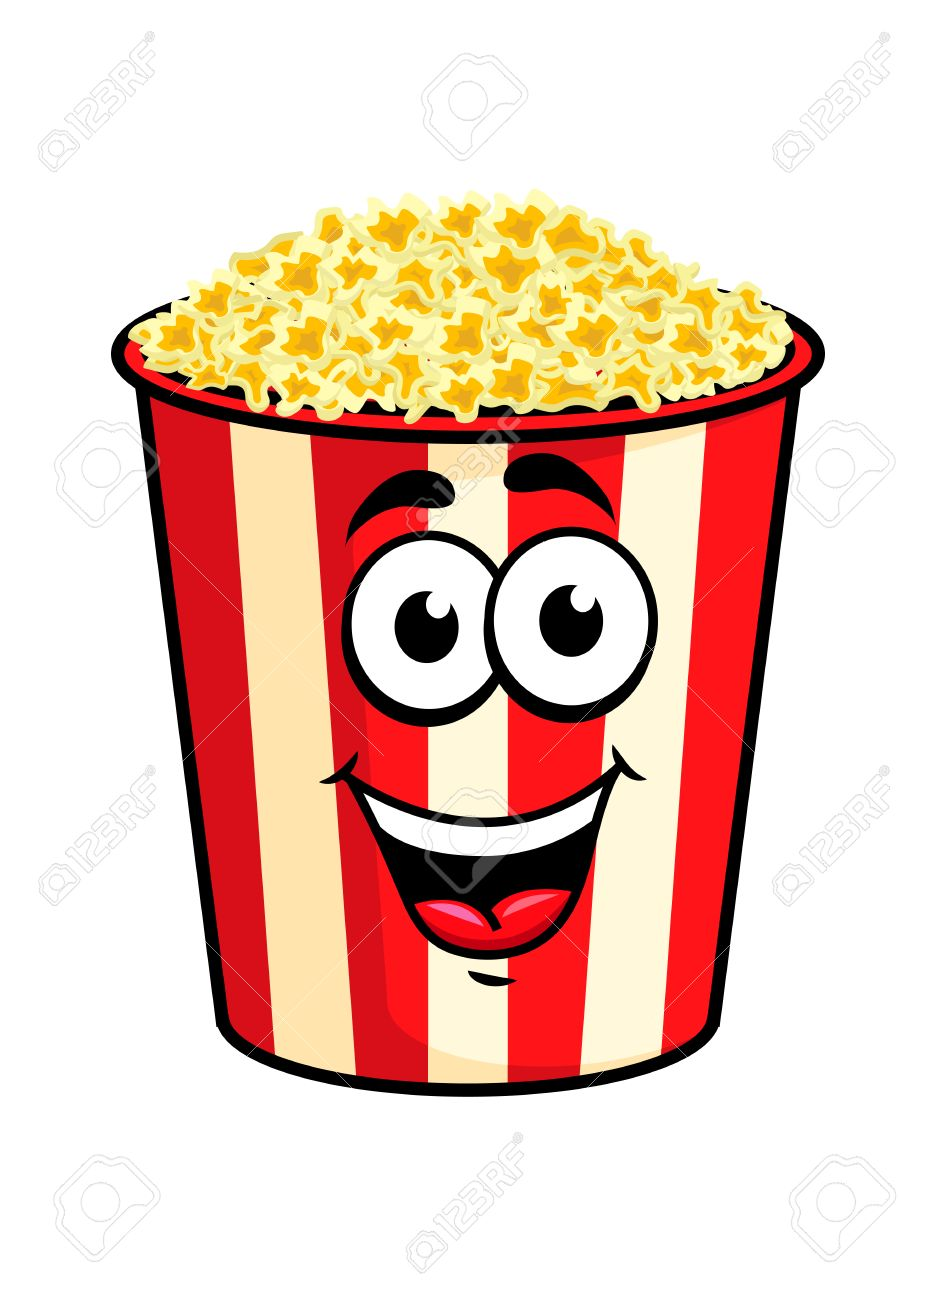 Cartoon Happy Cute Popcorn Character For Fastfood Design Royalty